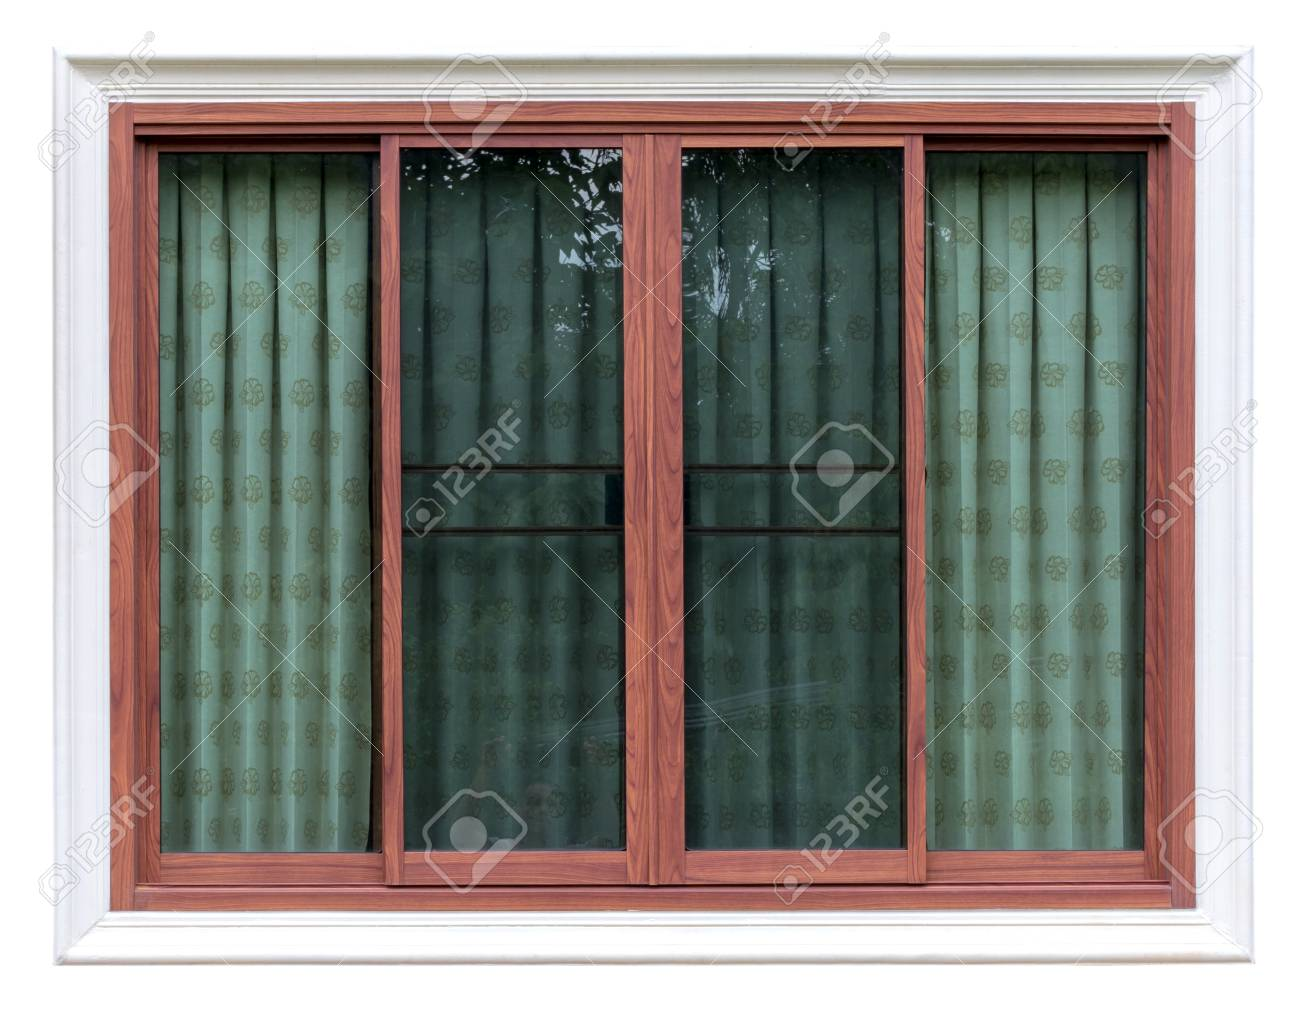 Isolate Close Up Picture Background Of Wooden Window Frame In